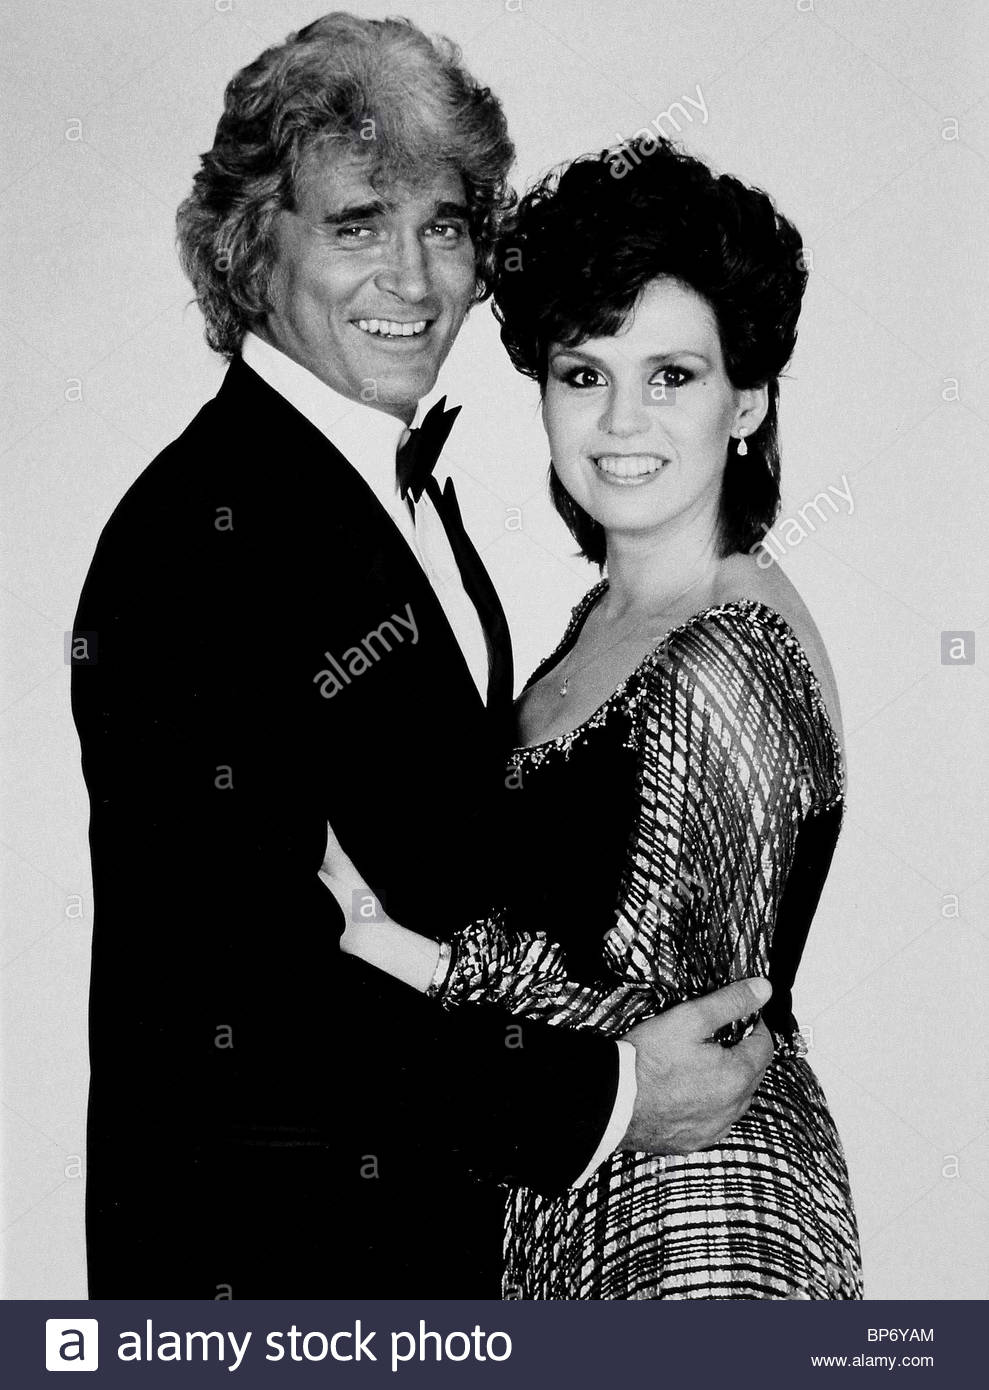 MICHAEL LANDON MARIE OSMOND HERE'S TELEVISION ENT. (1983) - Stock Image